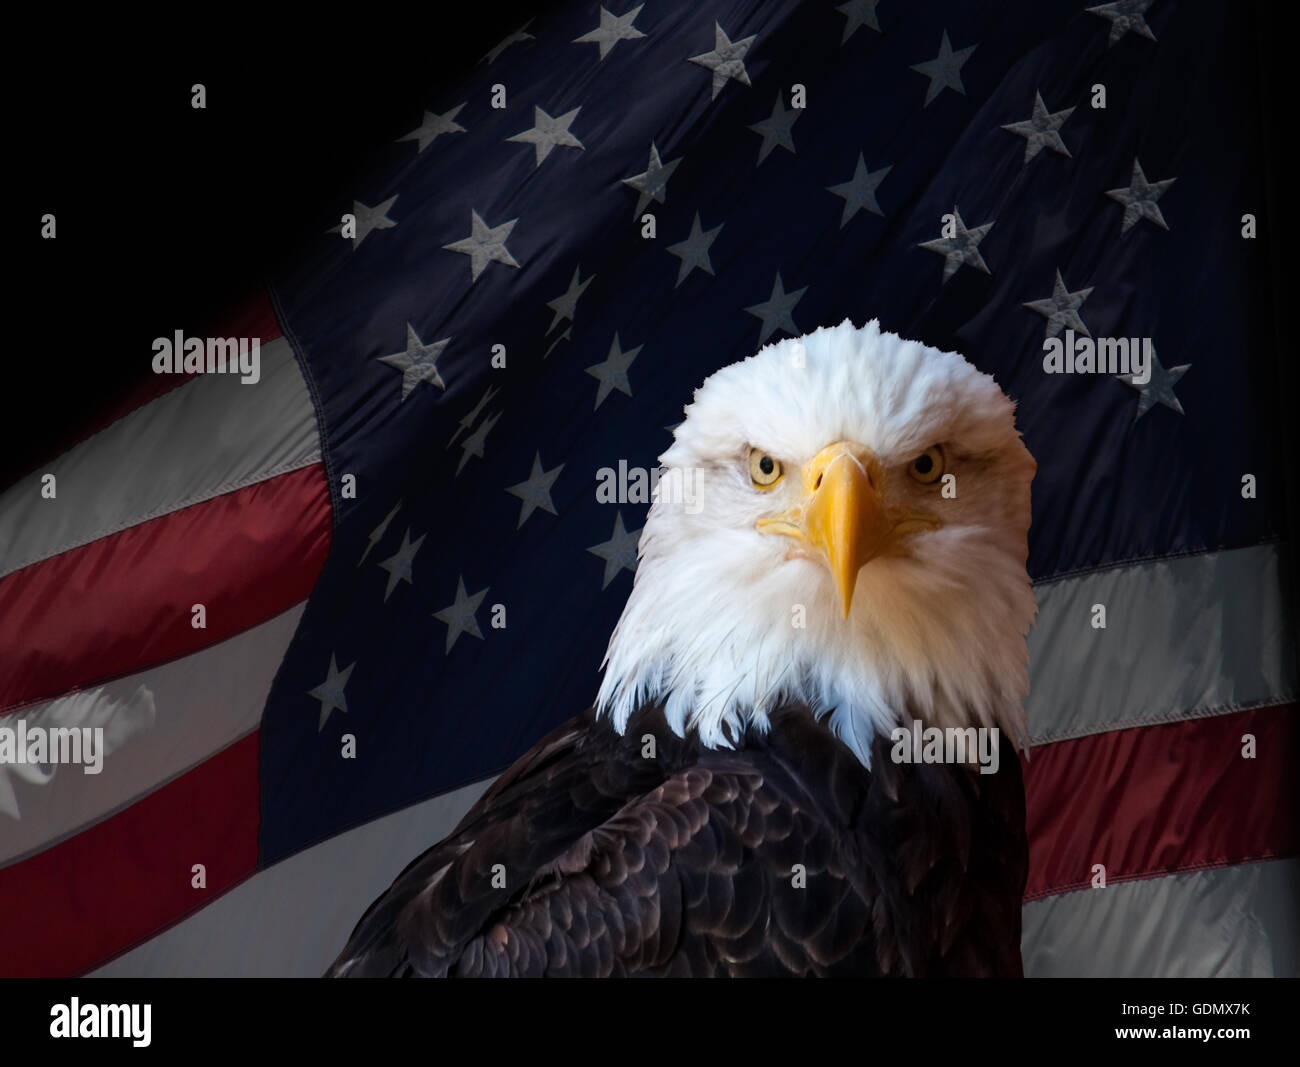 the bald eagle as the us national symbol of freedom Why is the bald eagle a us symbol  because it stands as a symbol of power and freedom,  is the bald eagle a national symbol of the us.